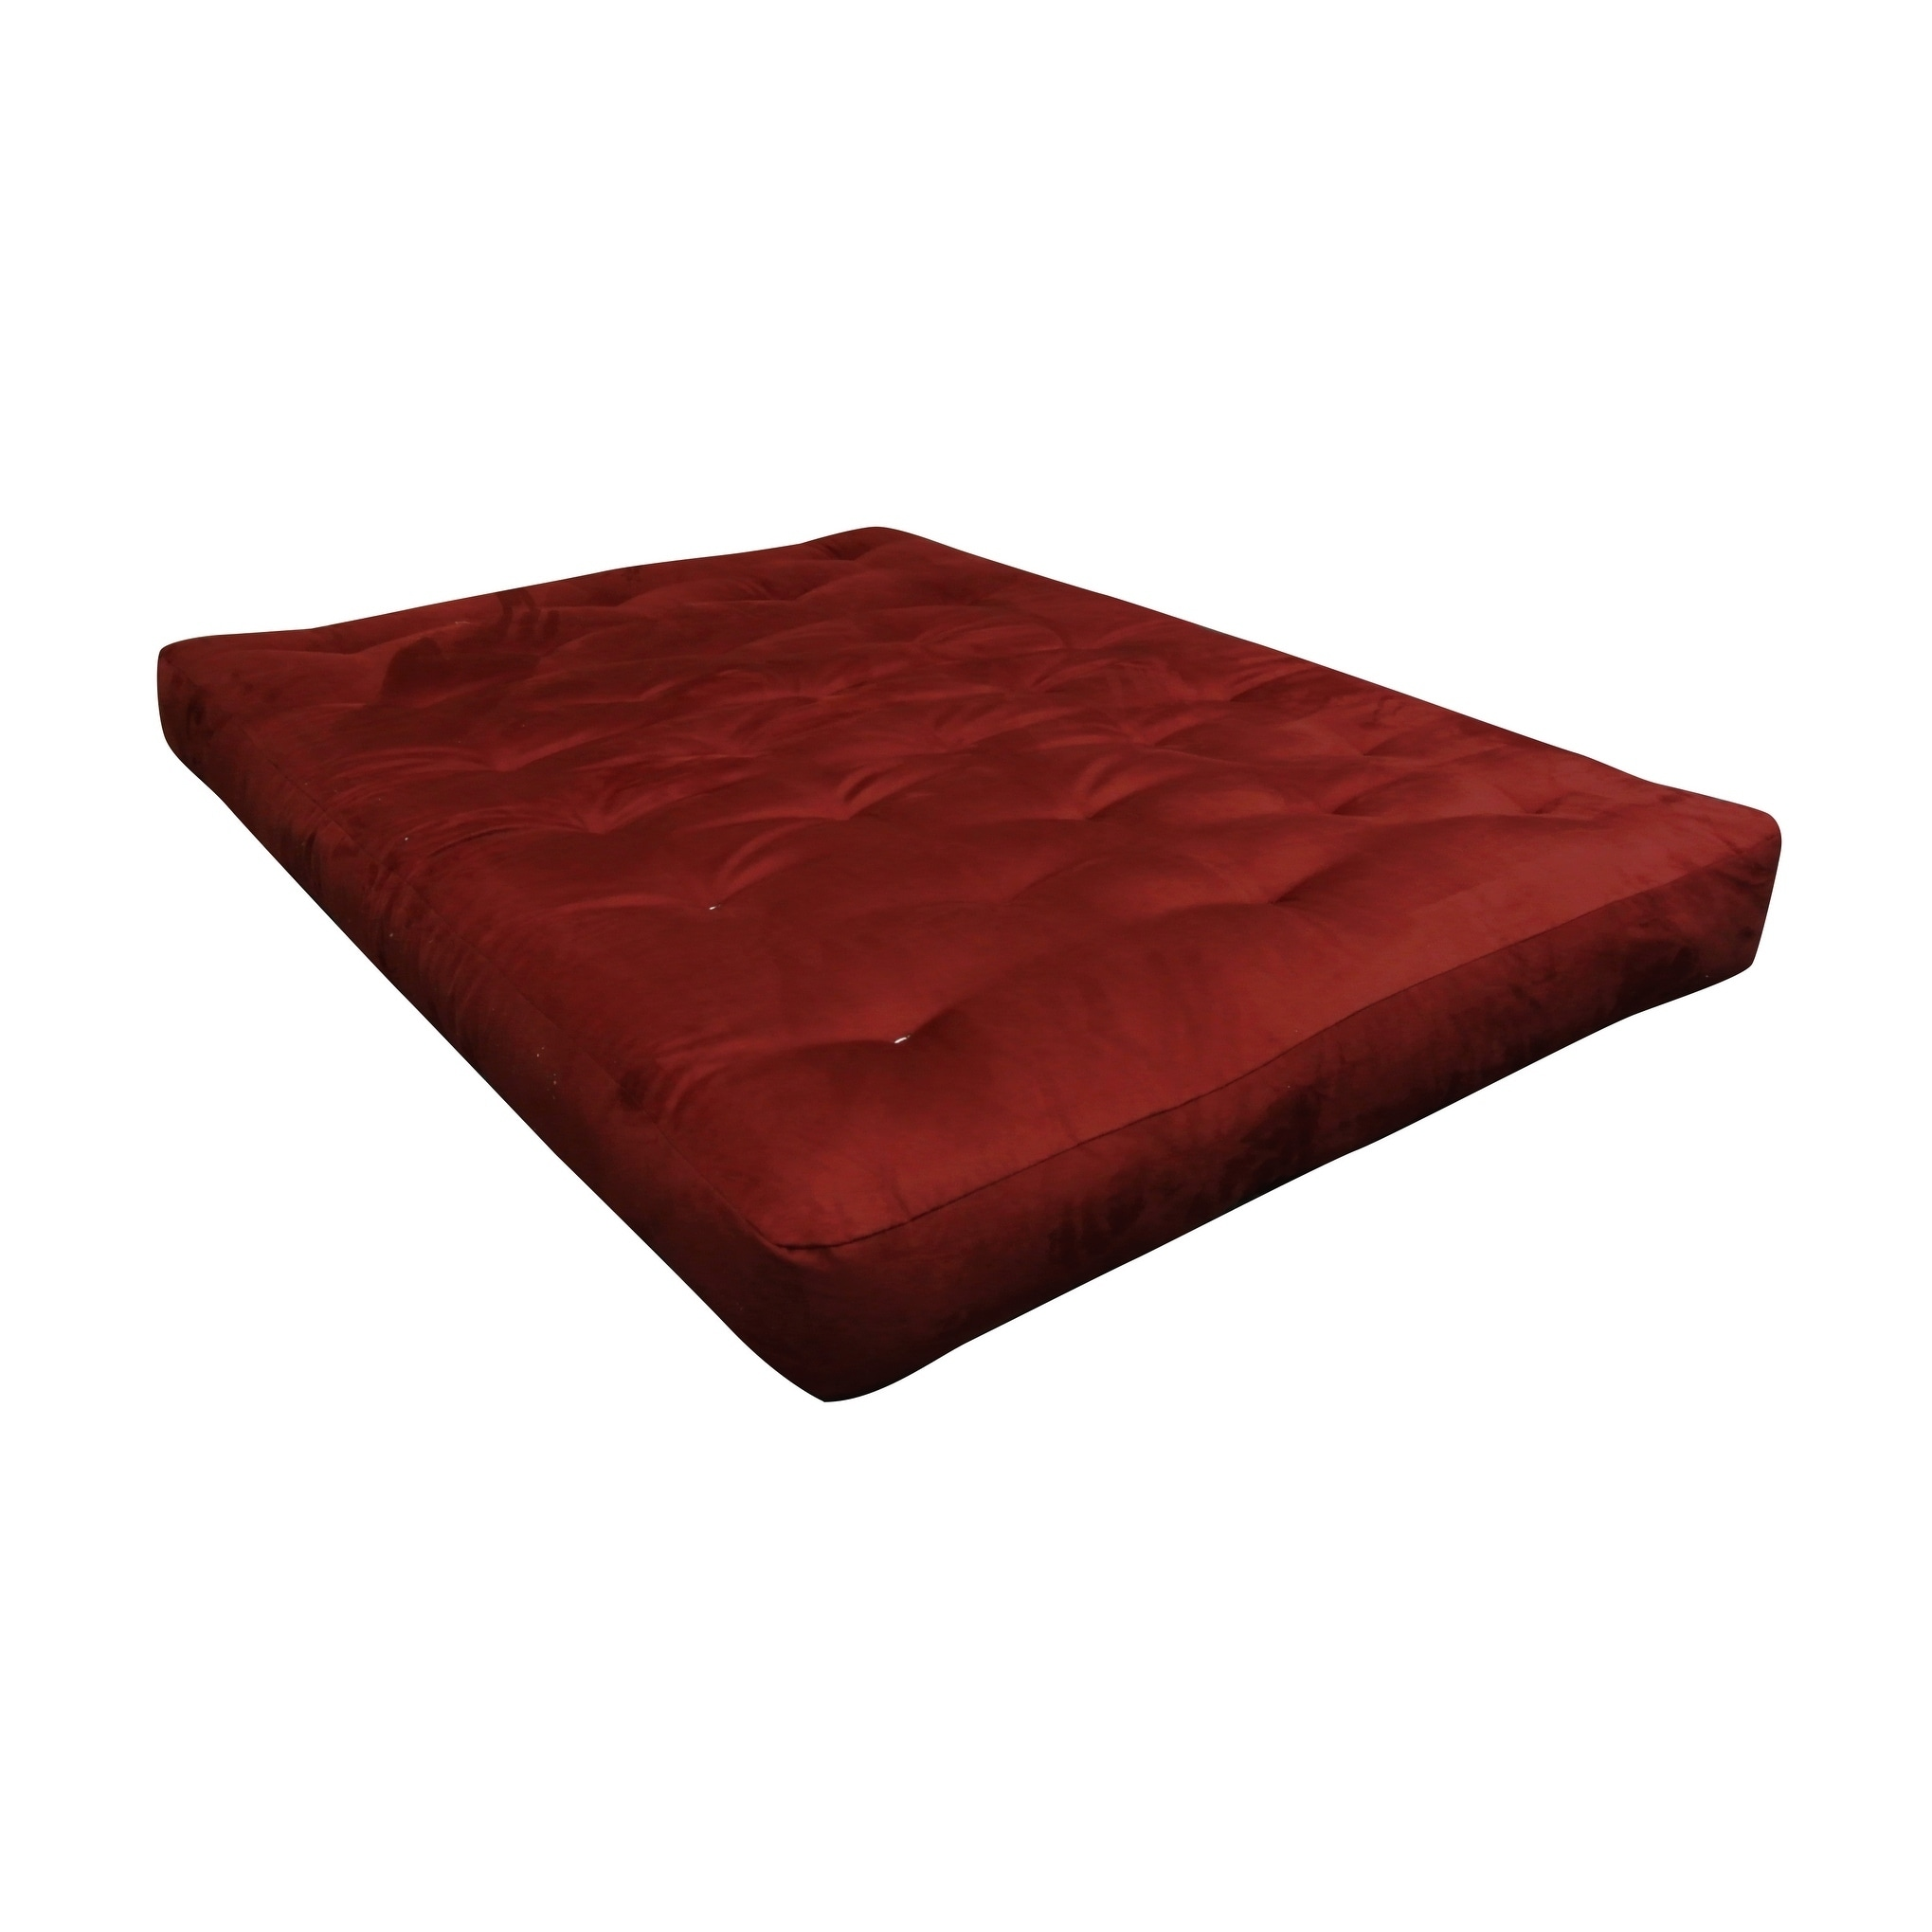 FeatherTouch II Cott Burgundy (Red) Microfiber 9-inch x 3...